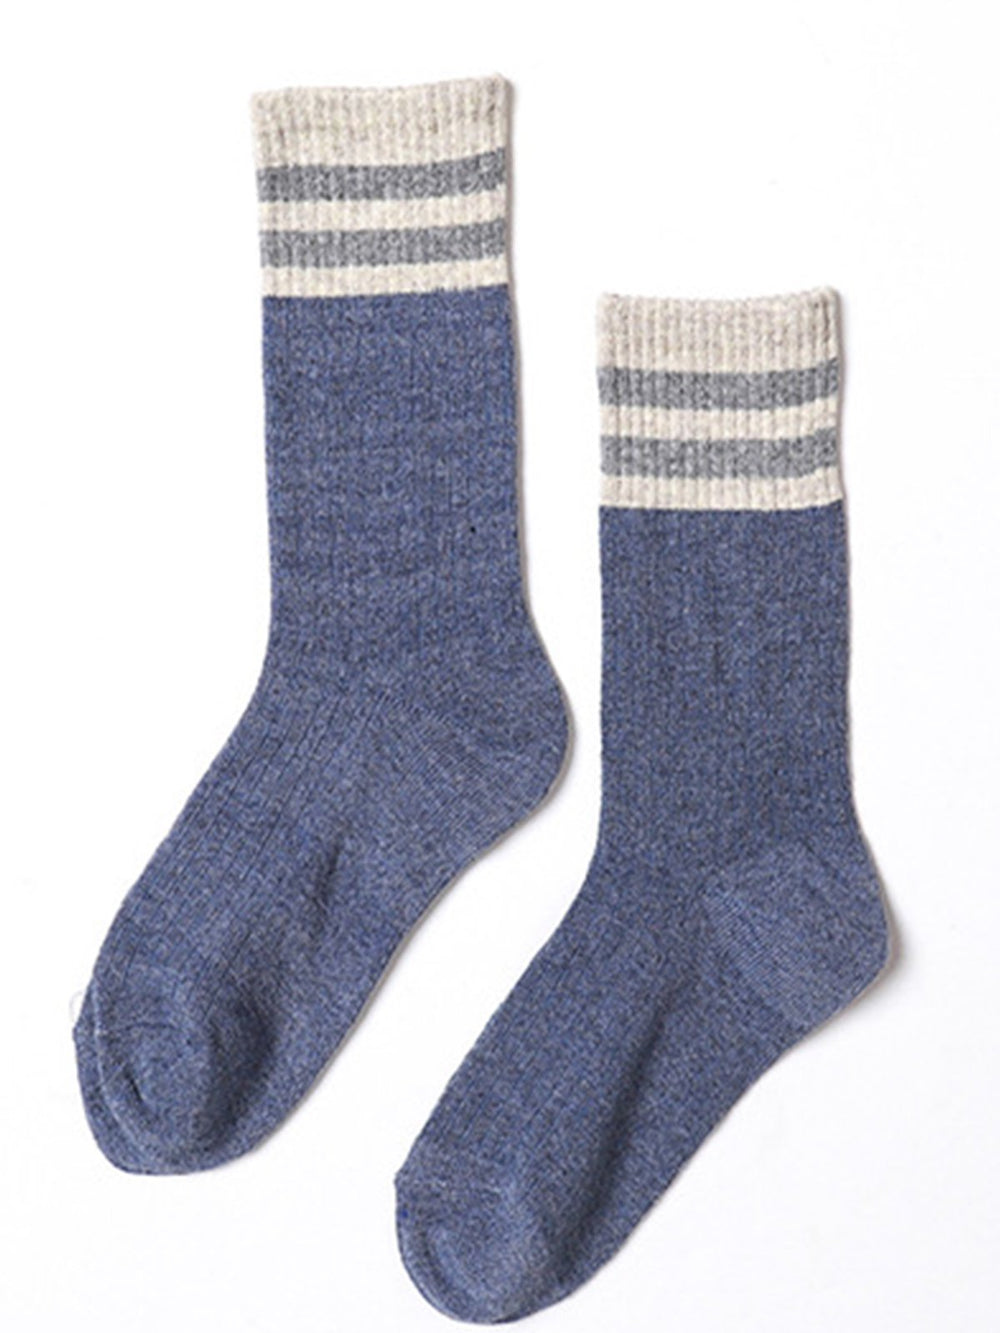 Vintage Casual Stripes Breathable Warm Cotton Socks